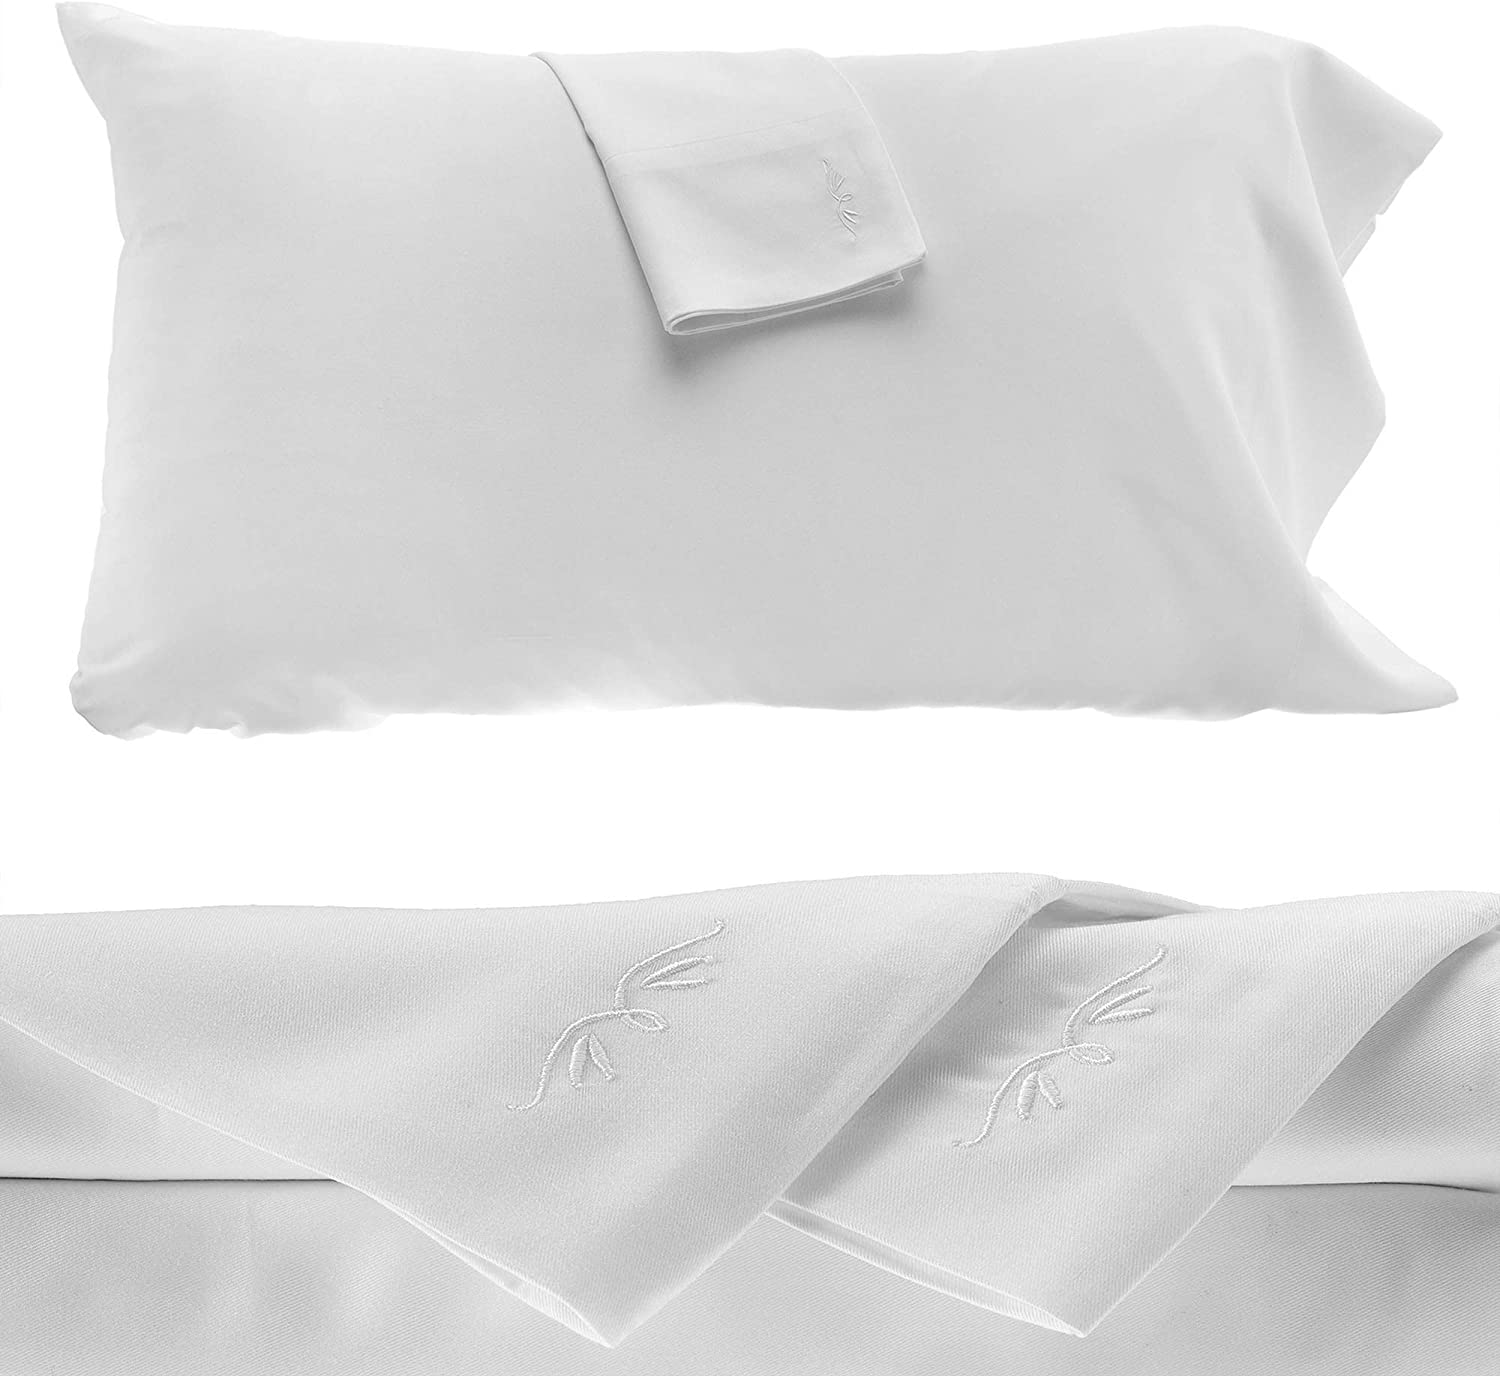 BedVoyage 100% Bamboo Sheet Set - Queen- Hypoallergenic - Rayon Viscose Bamboo (White) 4 Piece